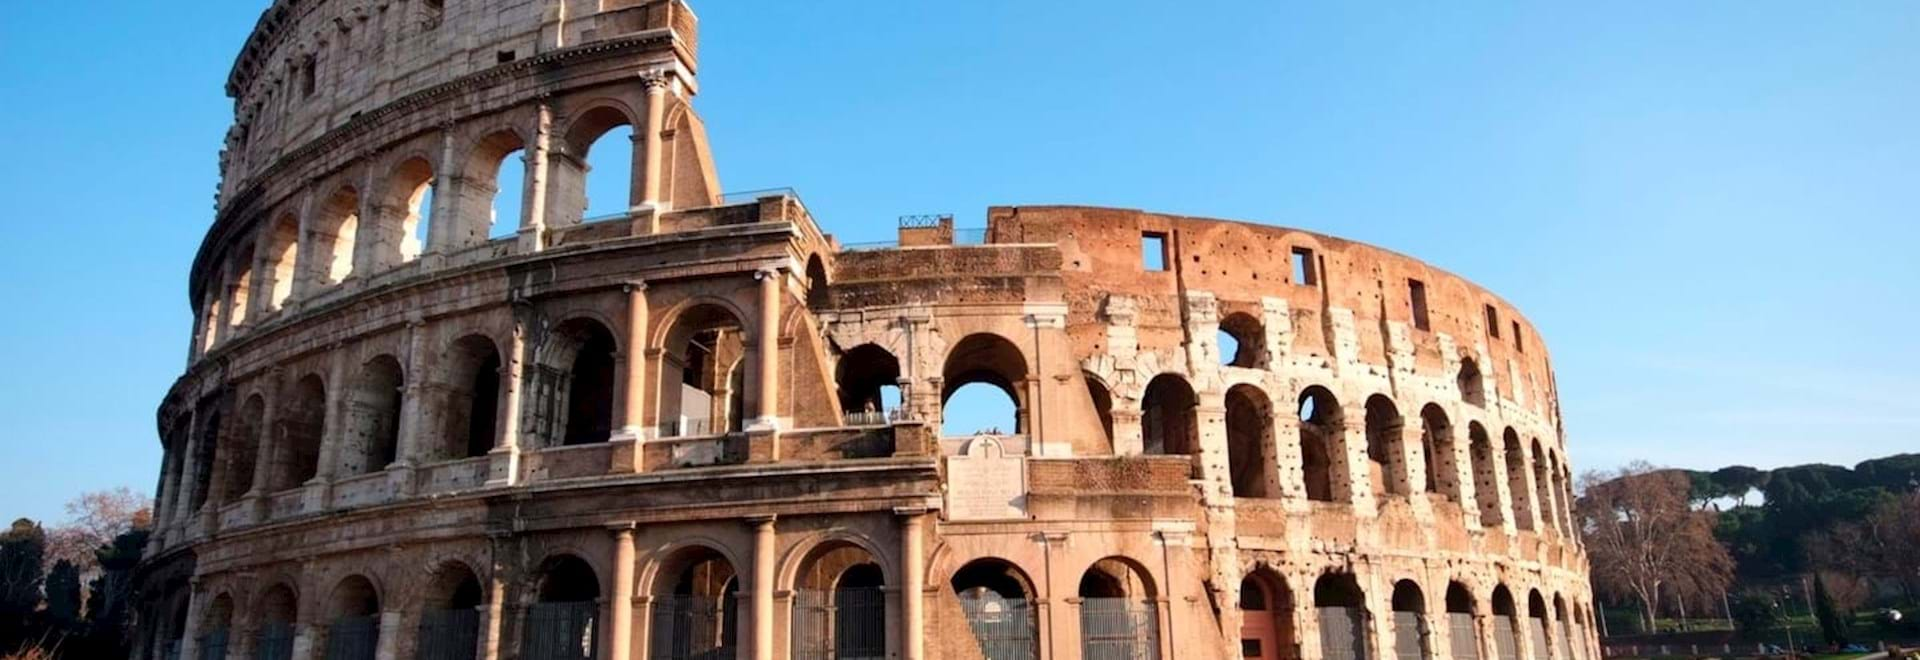 Colosseum Arena from outside on a Sunny afternoon